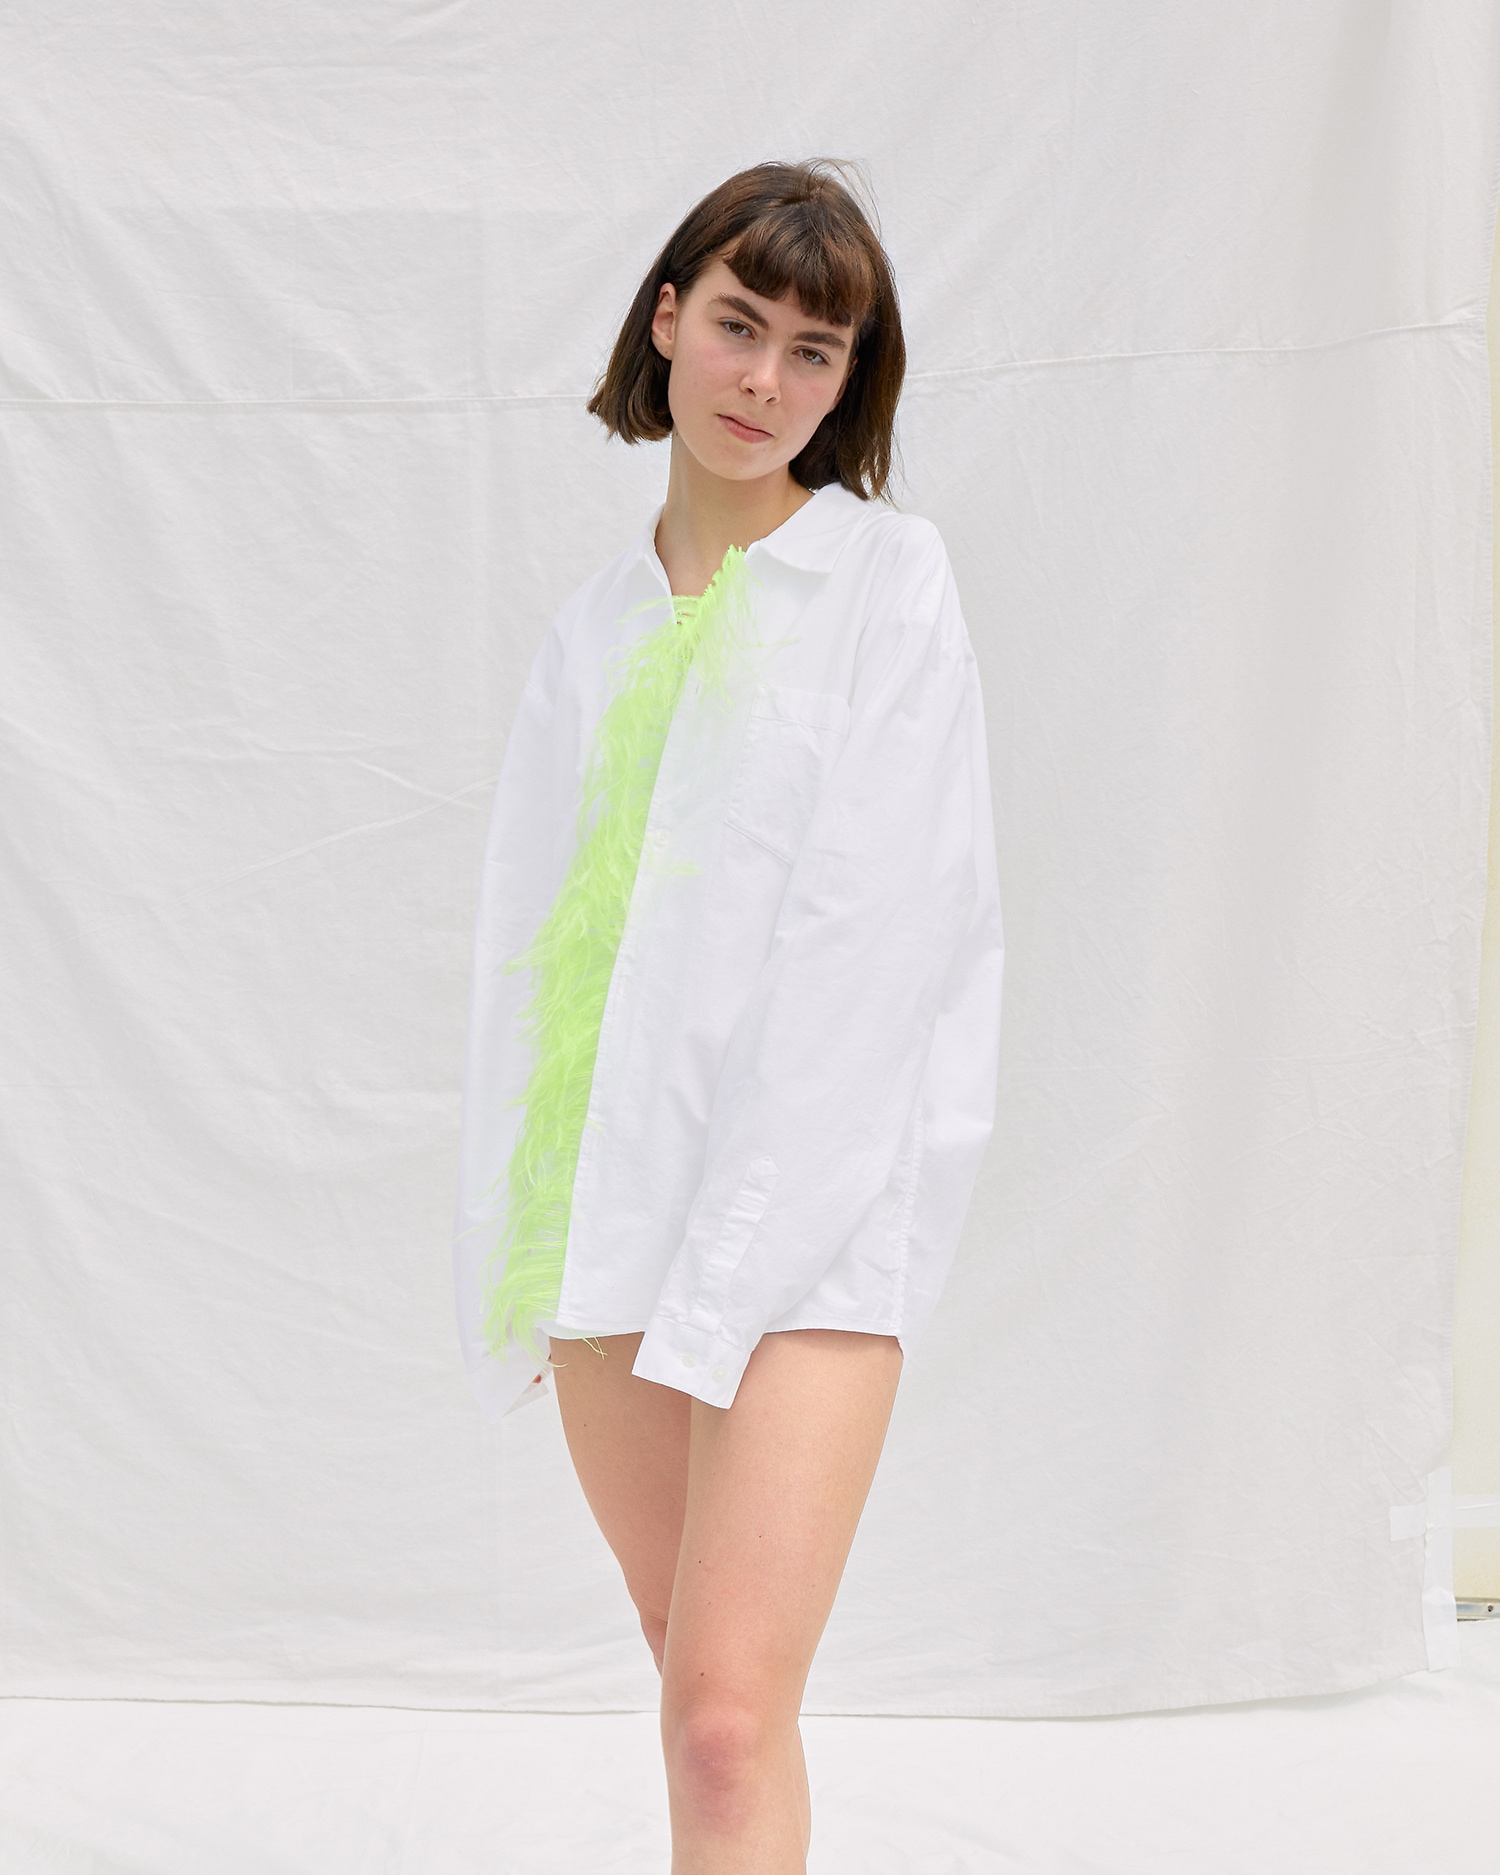 feathered-shirt-green-one-dna.jpg